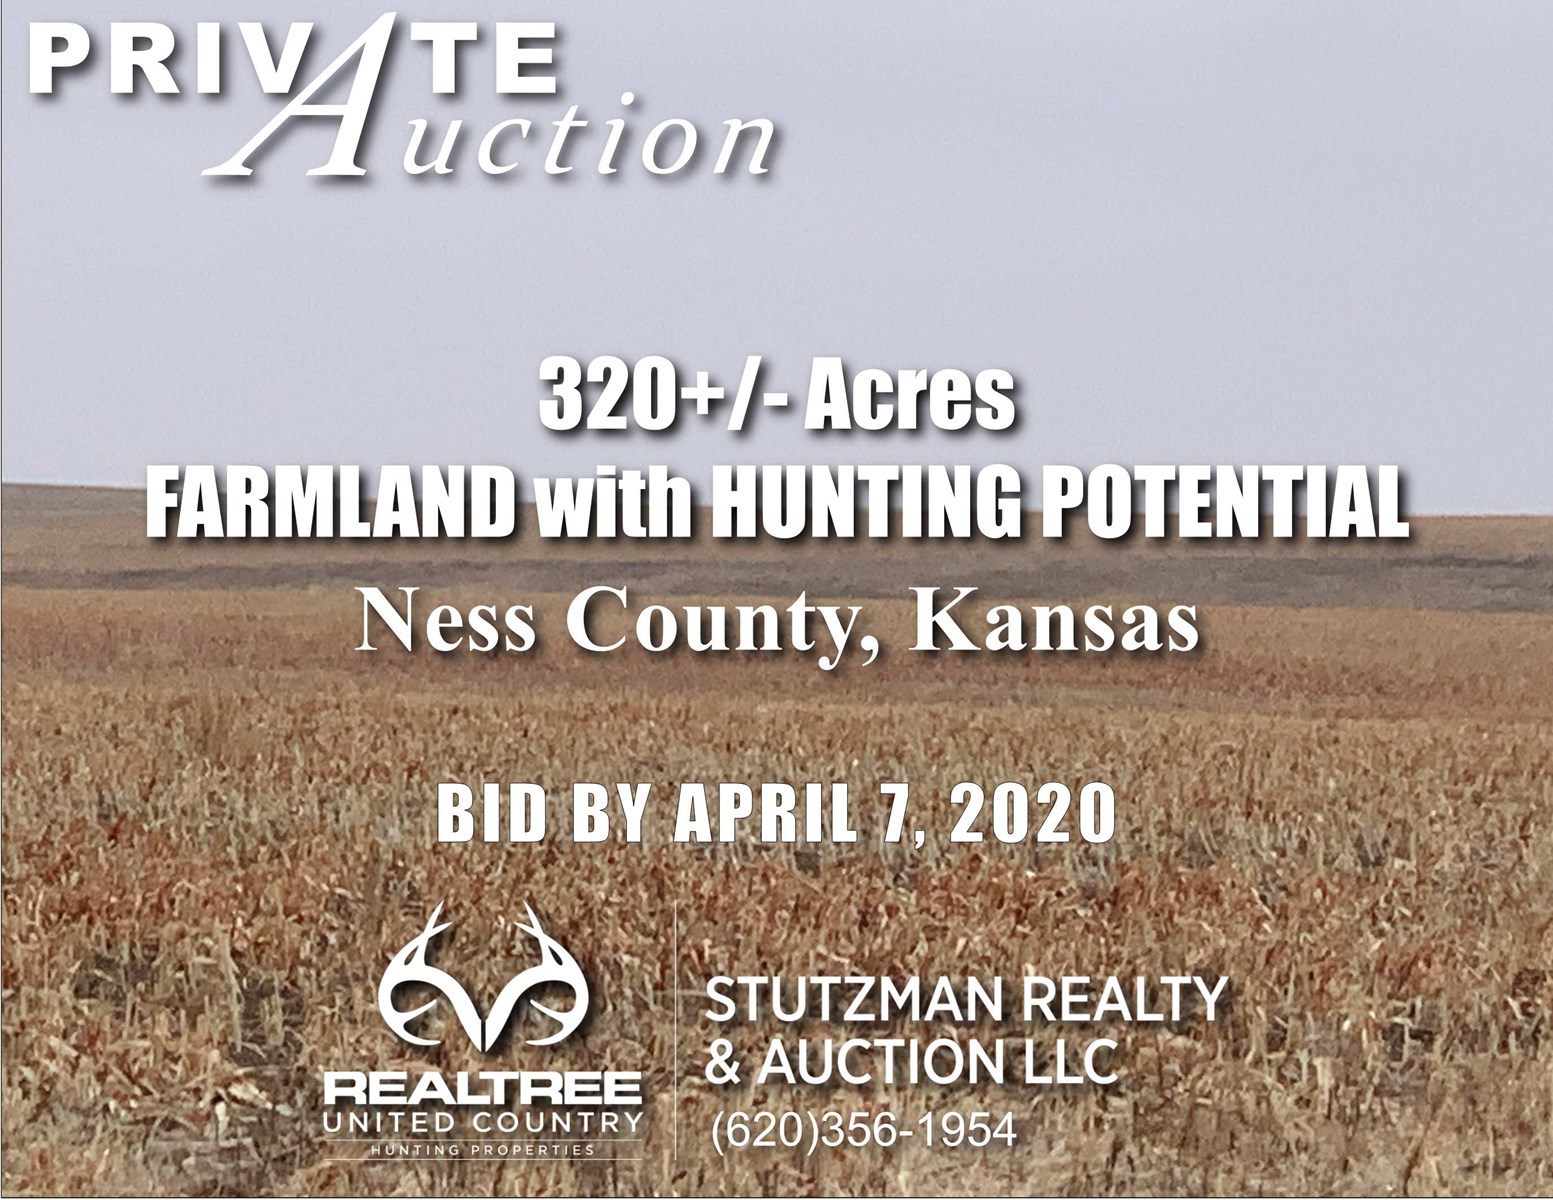 NESS COUNTY  KS ~ 320 +/- ACRES  FARM & HUNTING POTENTIAL